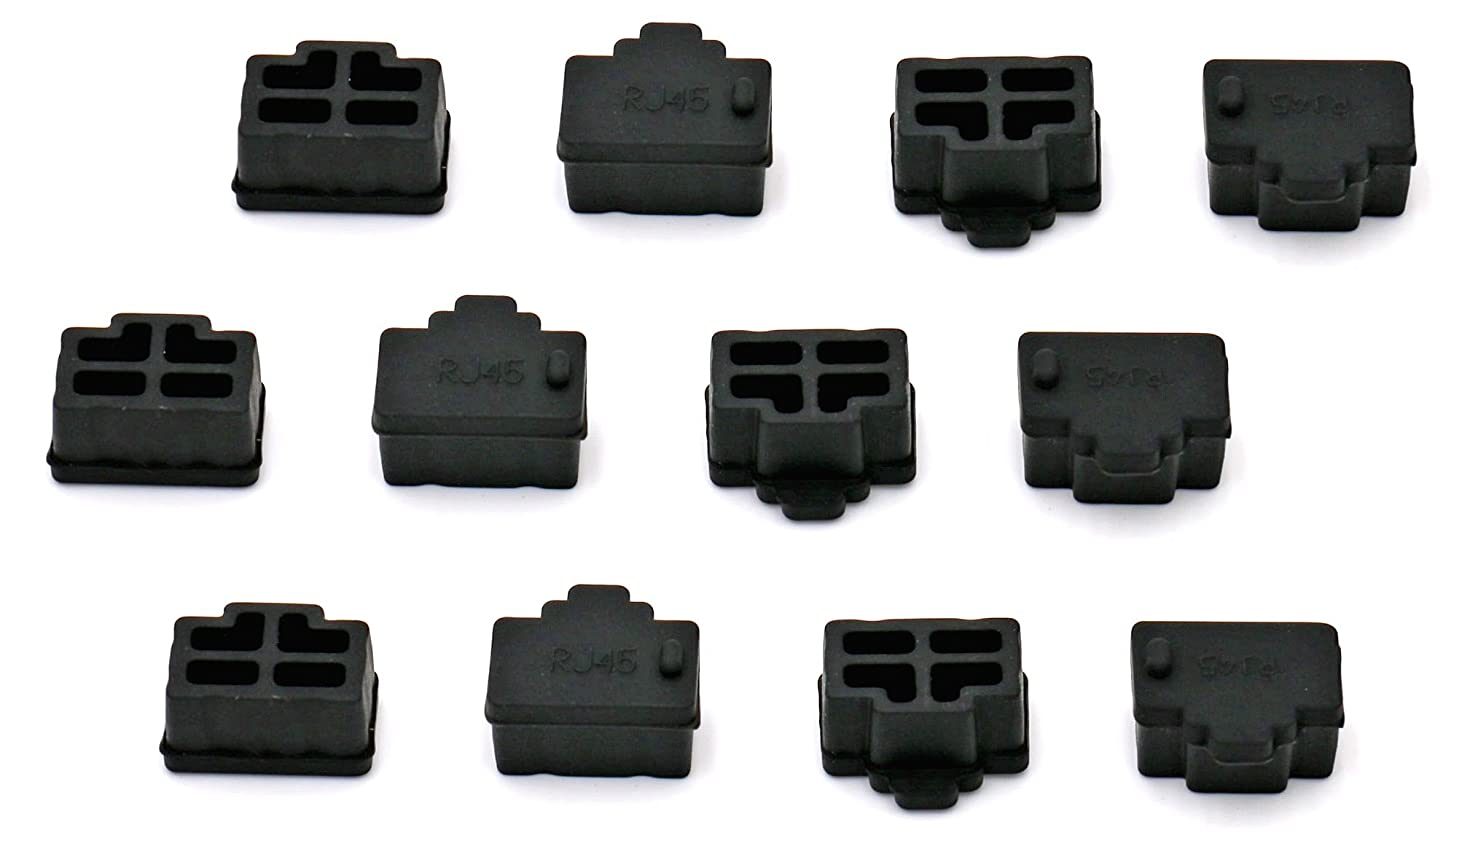 iExcell 12 Pcs Black Ethernet Hub Port RJ45 Anti Dust Cover Cap Protector Plug